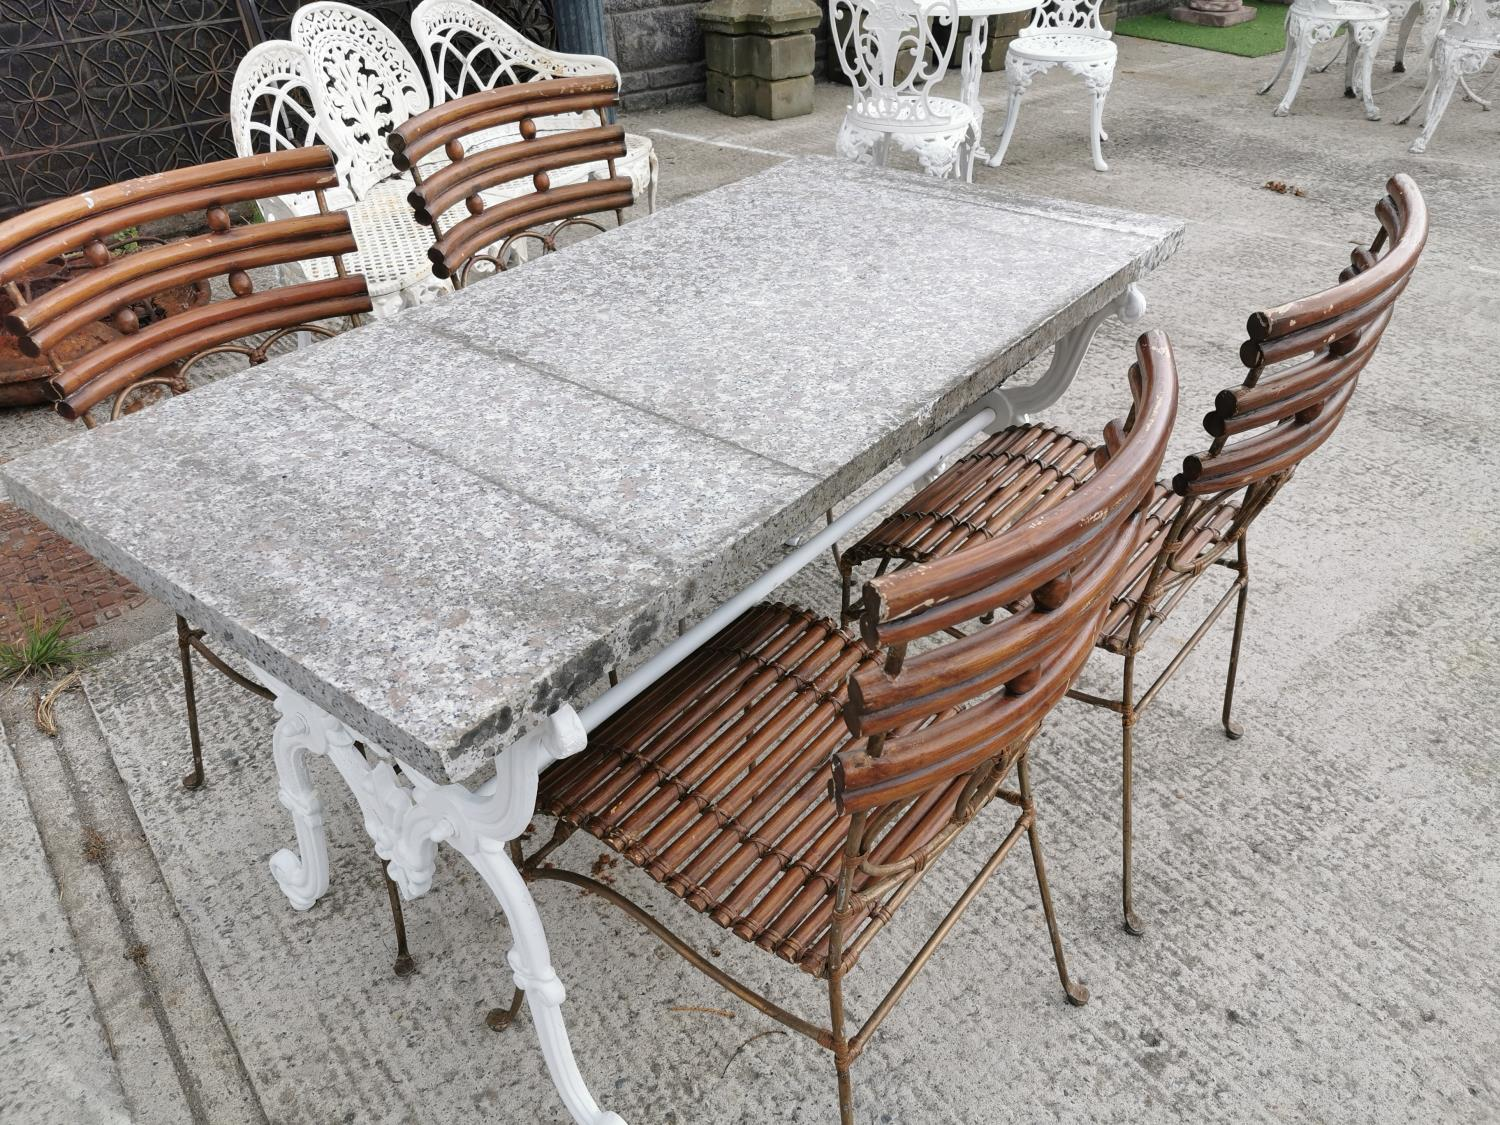 Set of four wrought iron and bamboo garden chairs. - Image 3 of 3